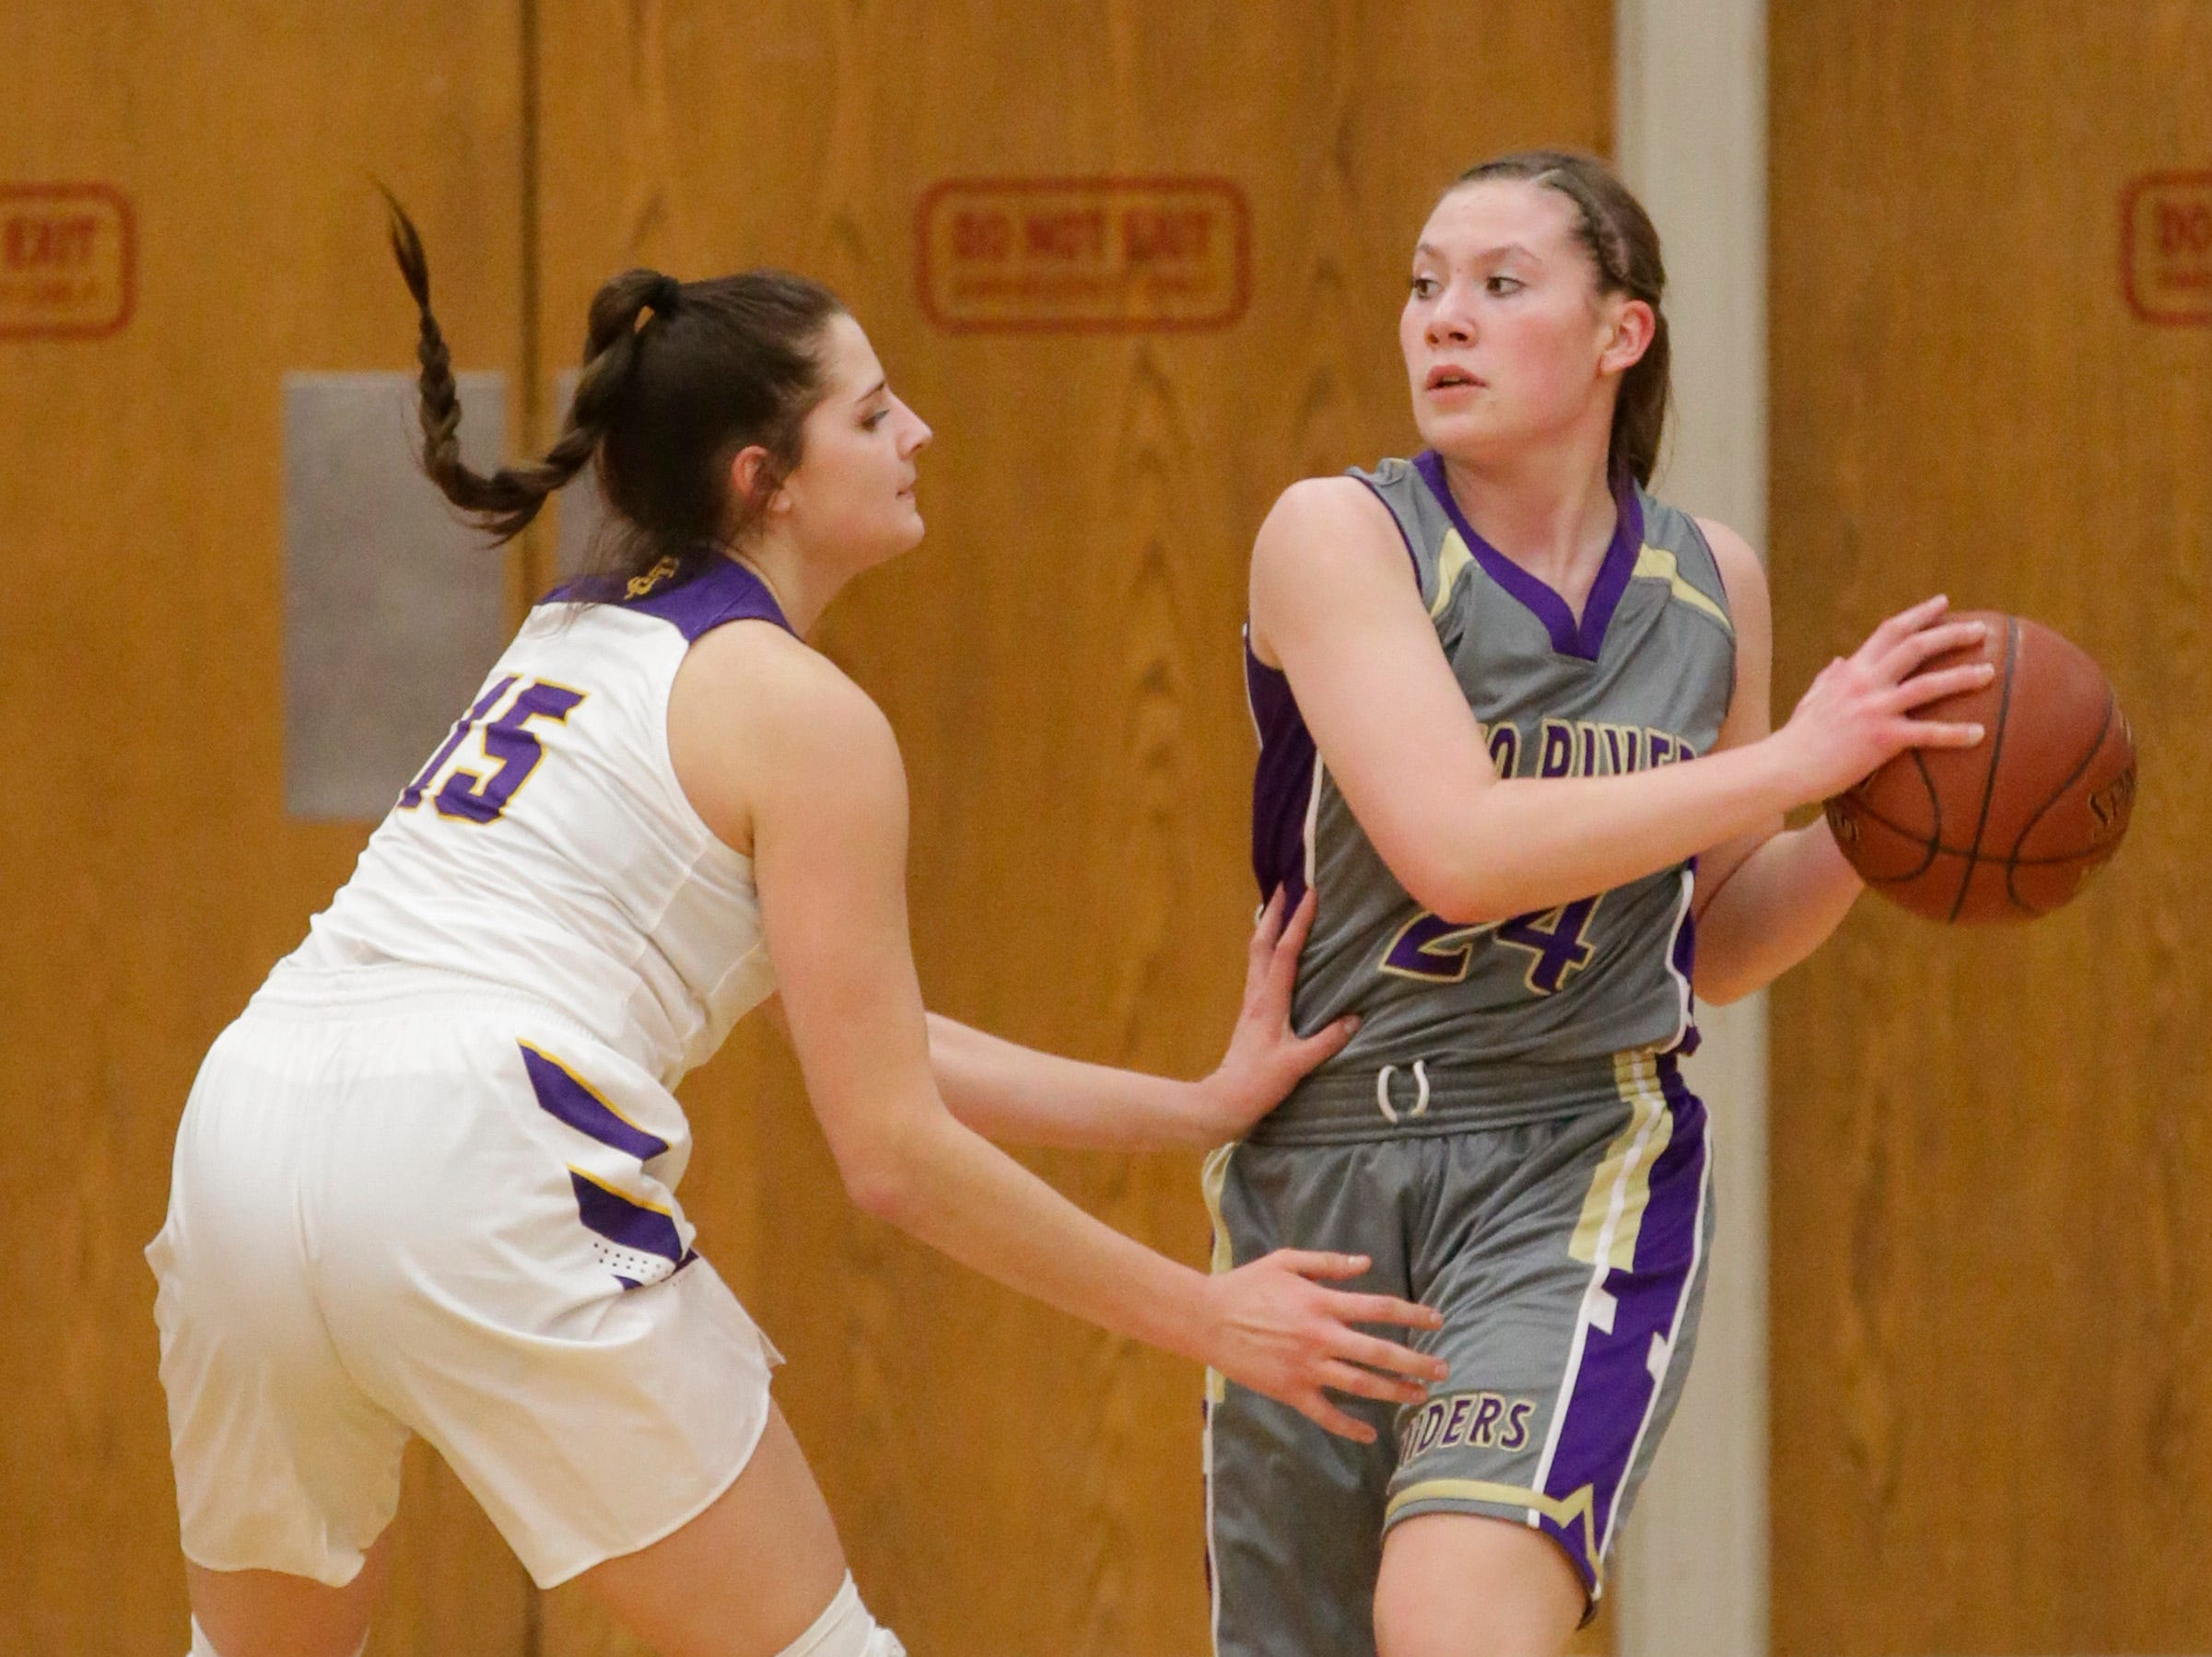 Sheboygan Falls' Myja Durn (15) guards Two Rivers' Kiley Graff (24), Thursday, February 14, 2019, in Sheboygan Falls, Wis.